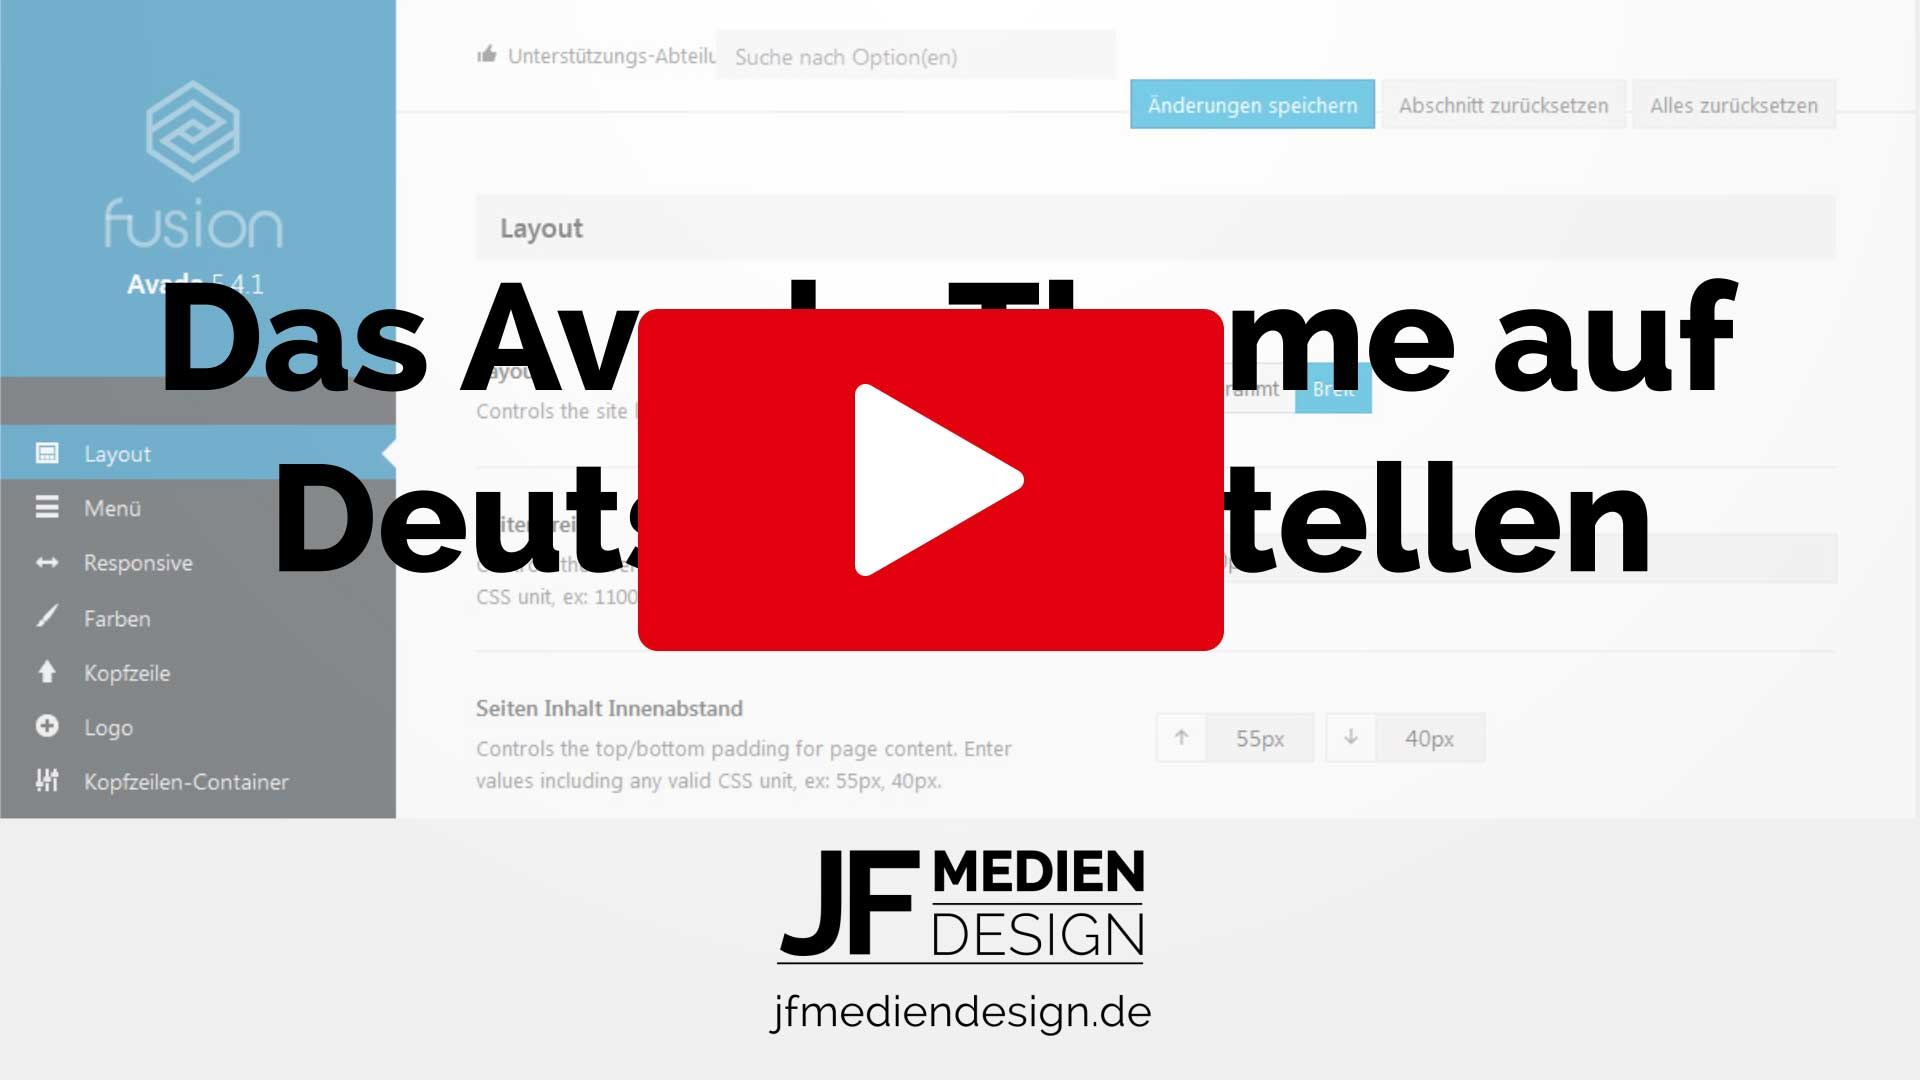 Avada Theme auf deutsch umstellen YouTube Video Tutorial